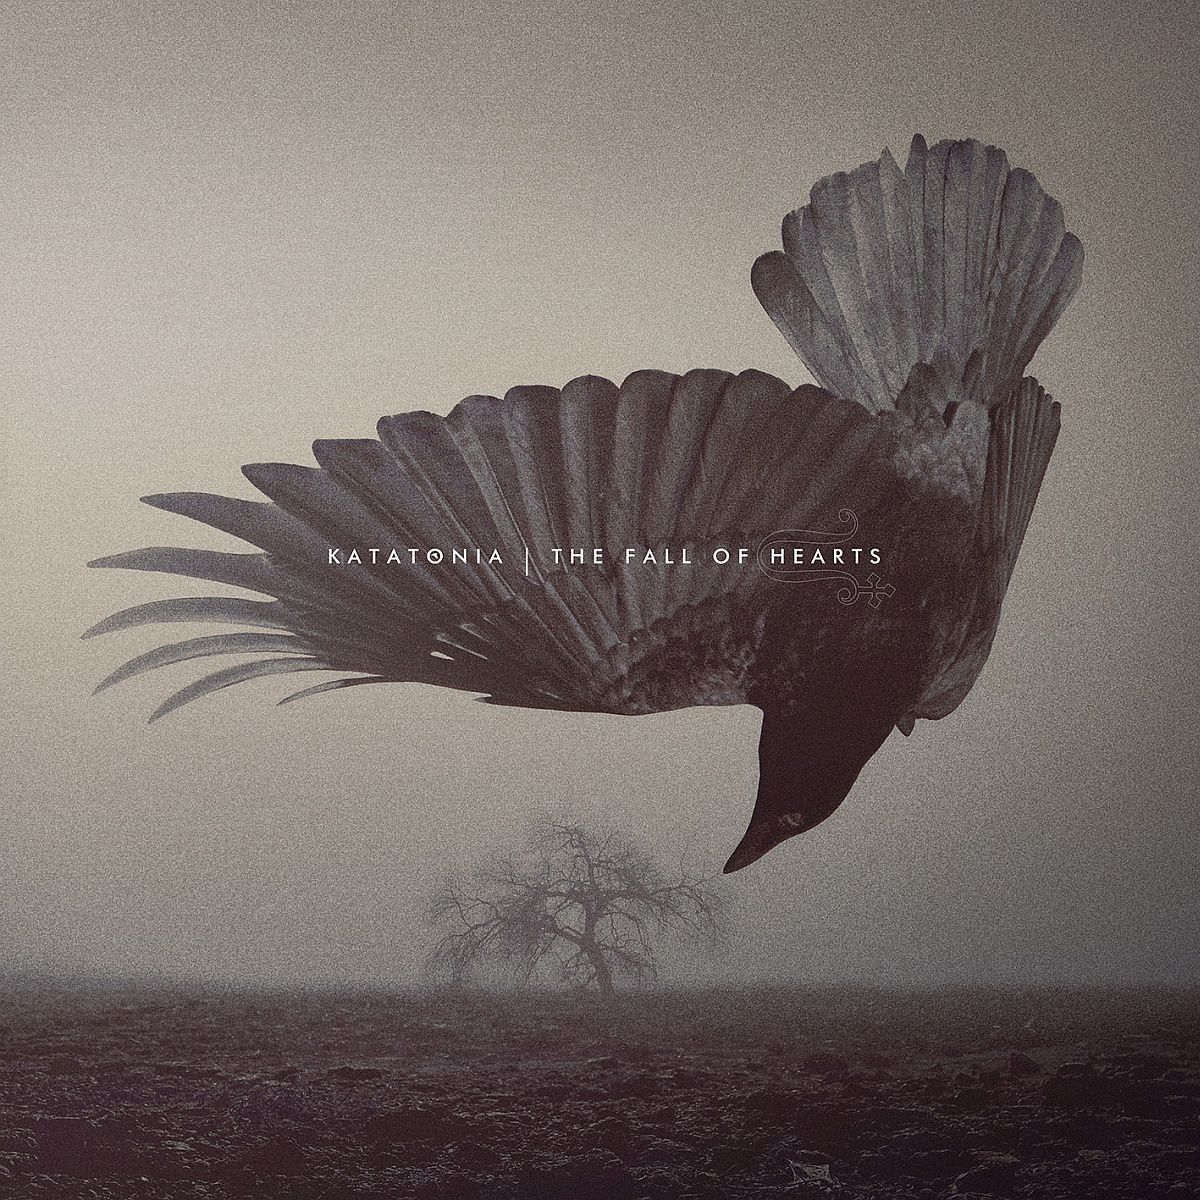 KATATONIA premier new song on Saturday